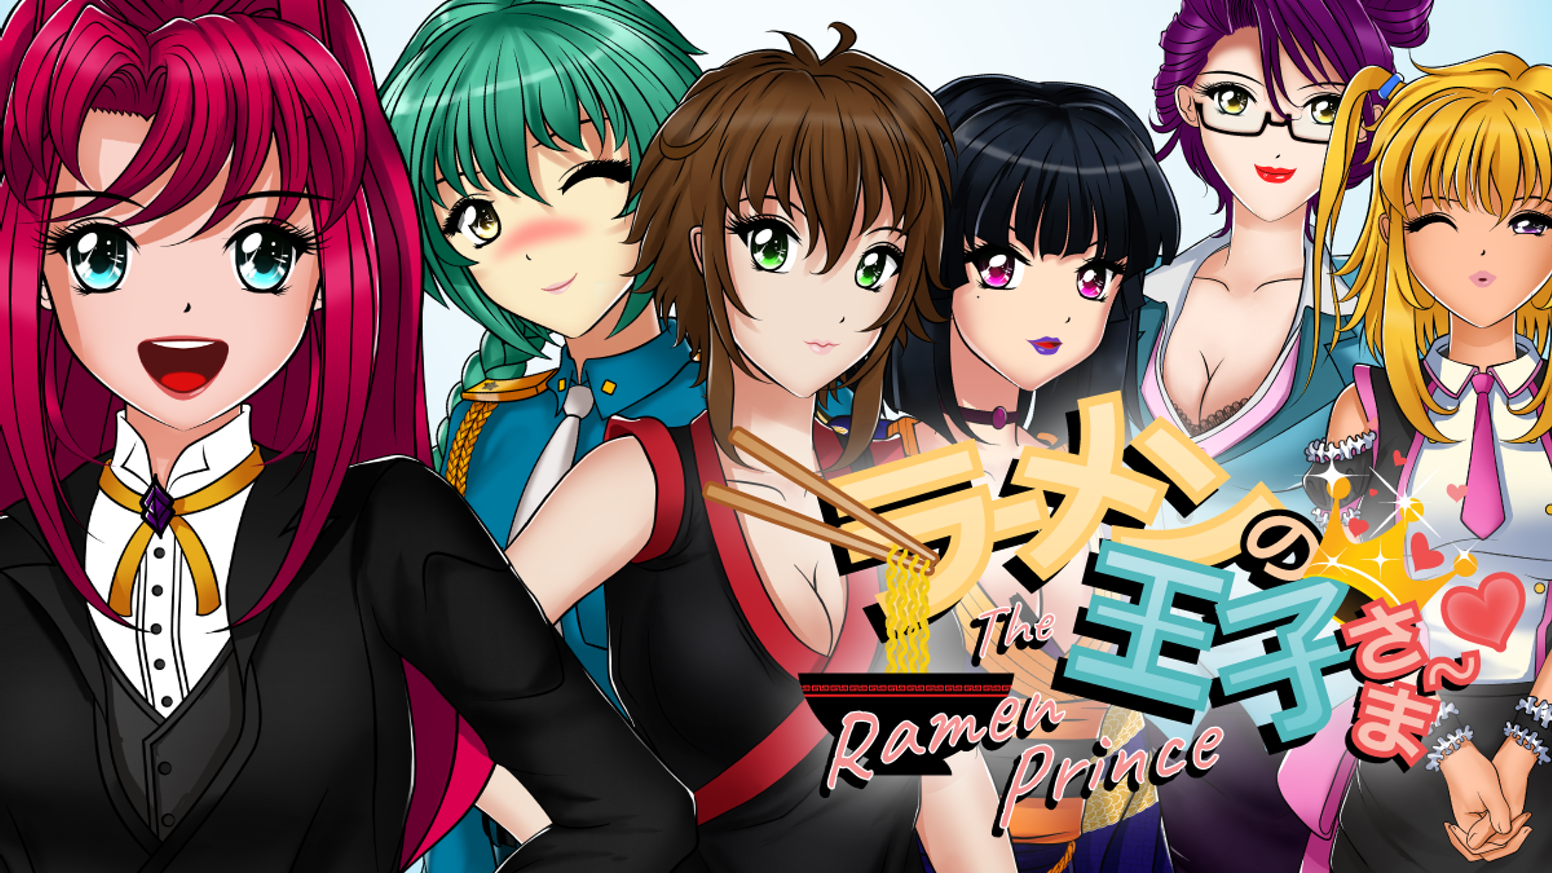 A multi route mature visual novel with 10 female love interests to choose from